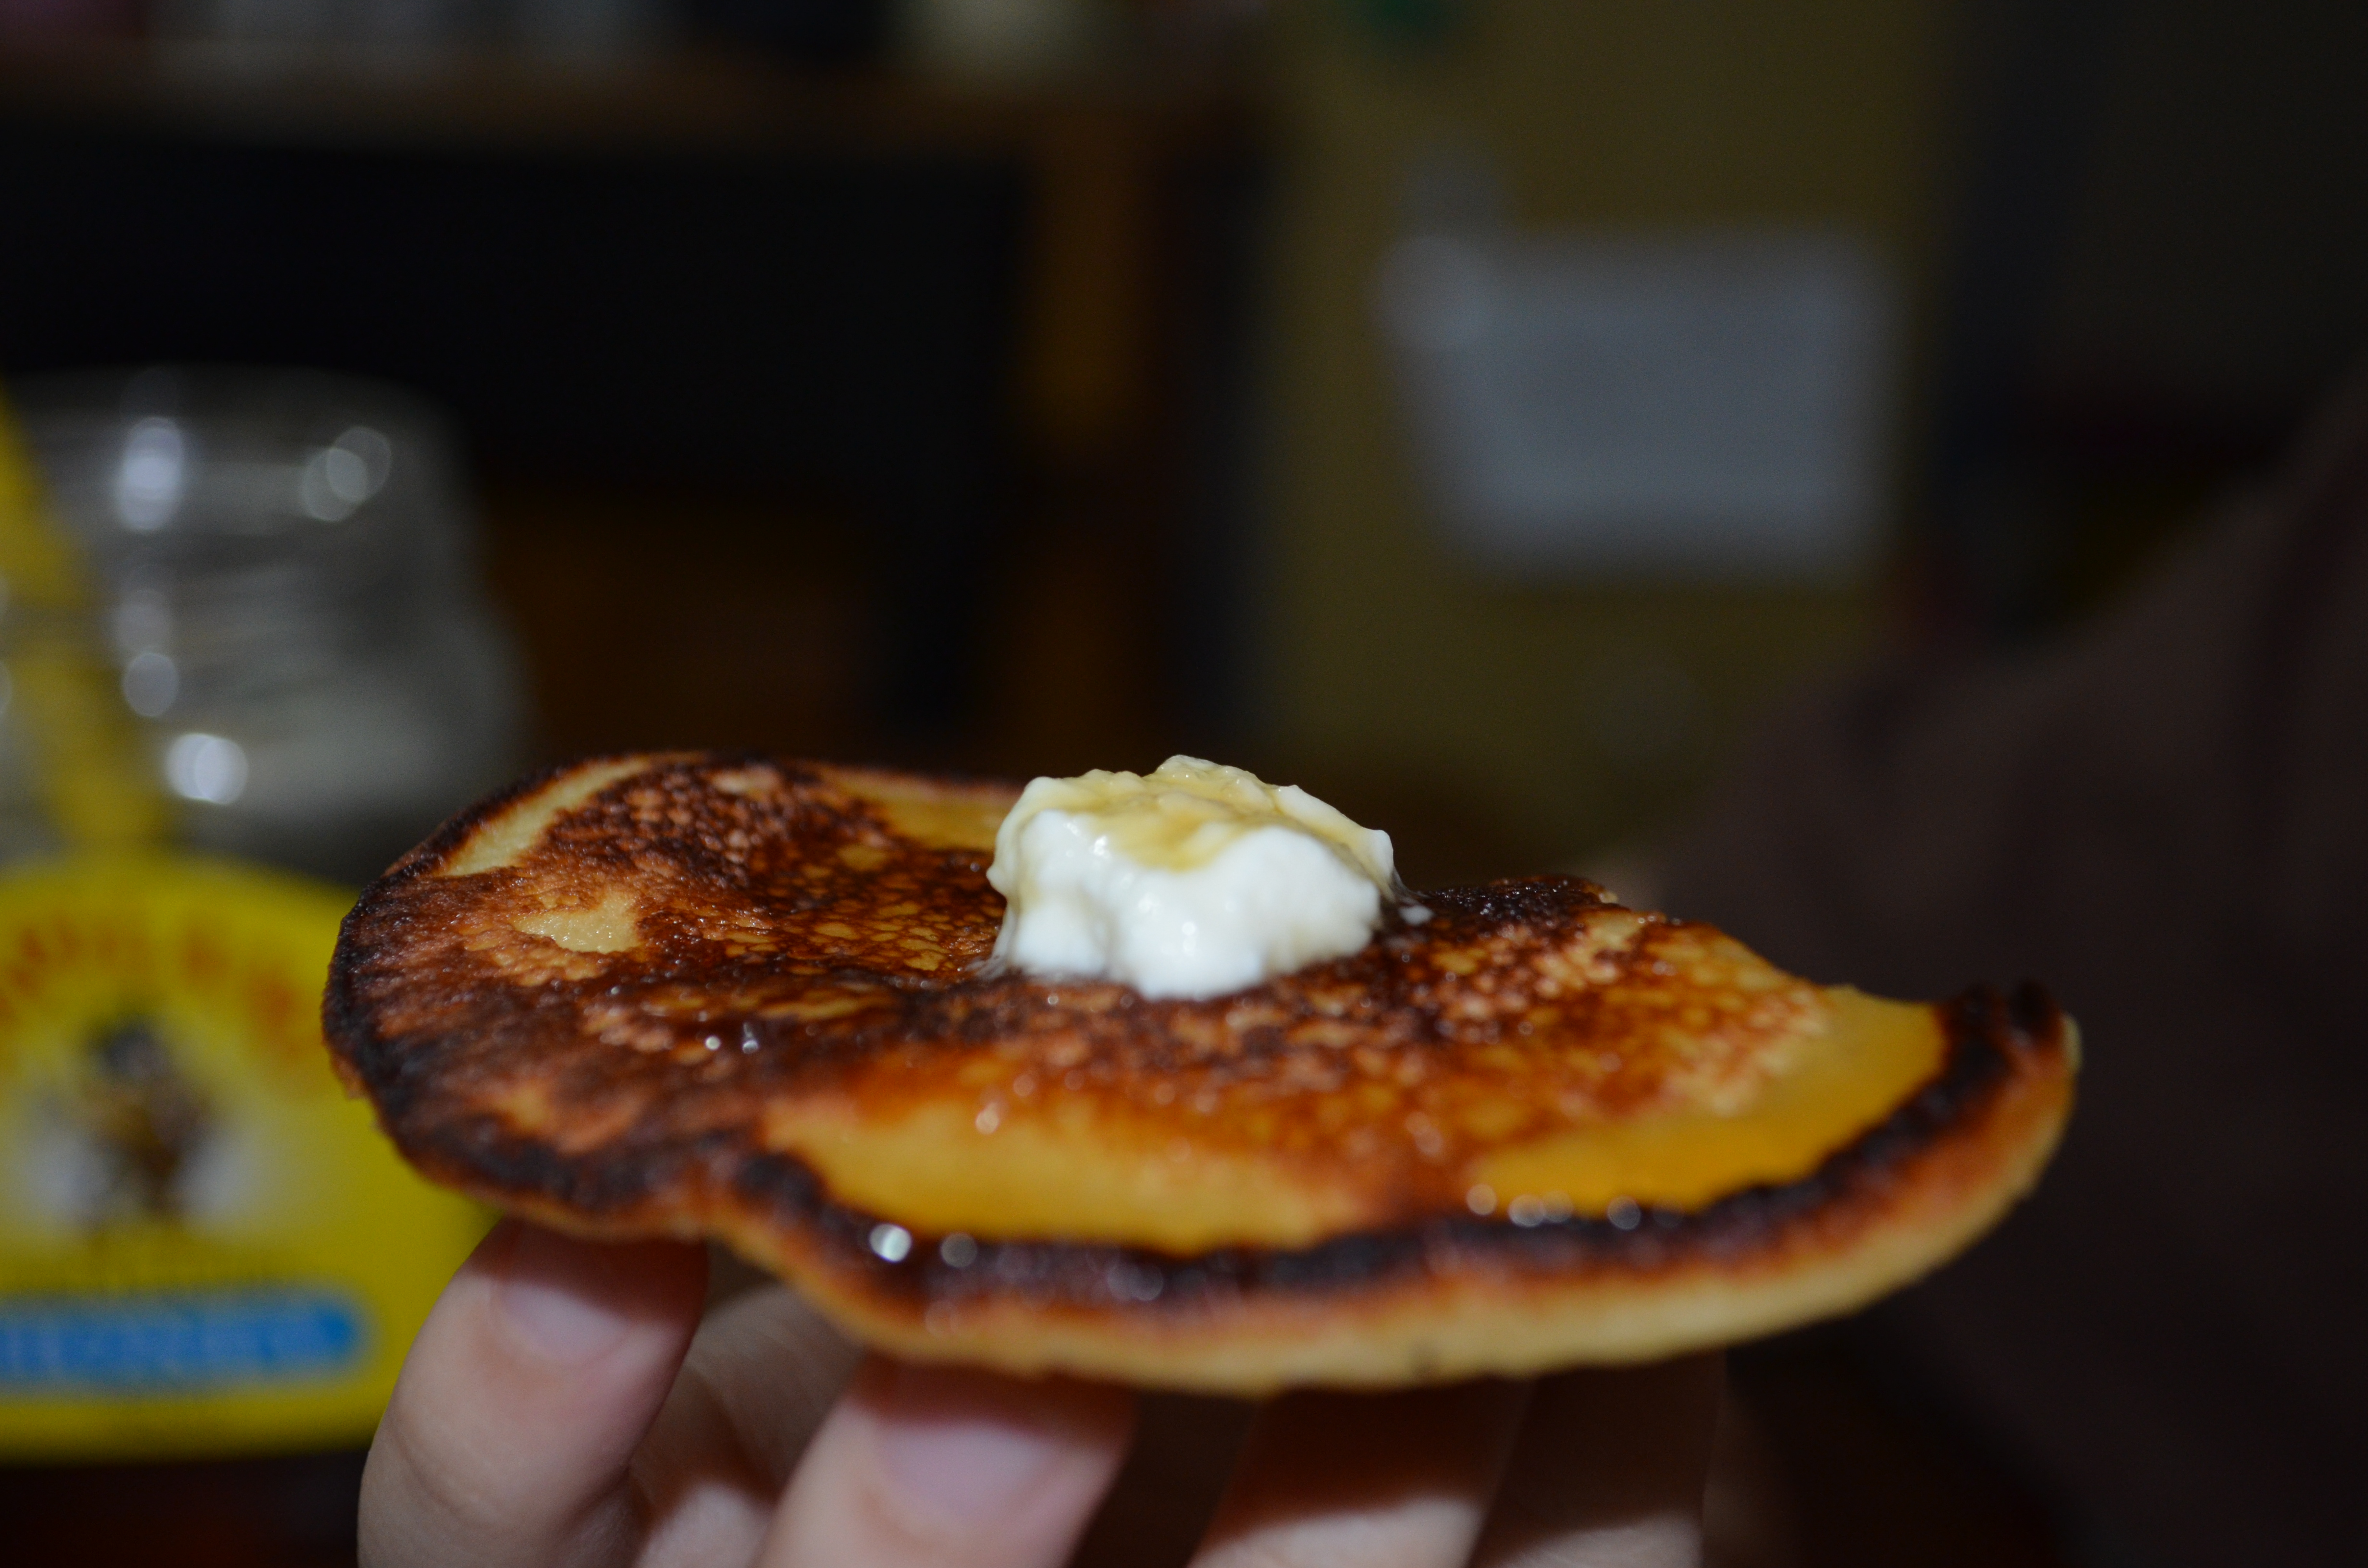 Yummy! Crumpet with honey and whipped cream.